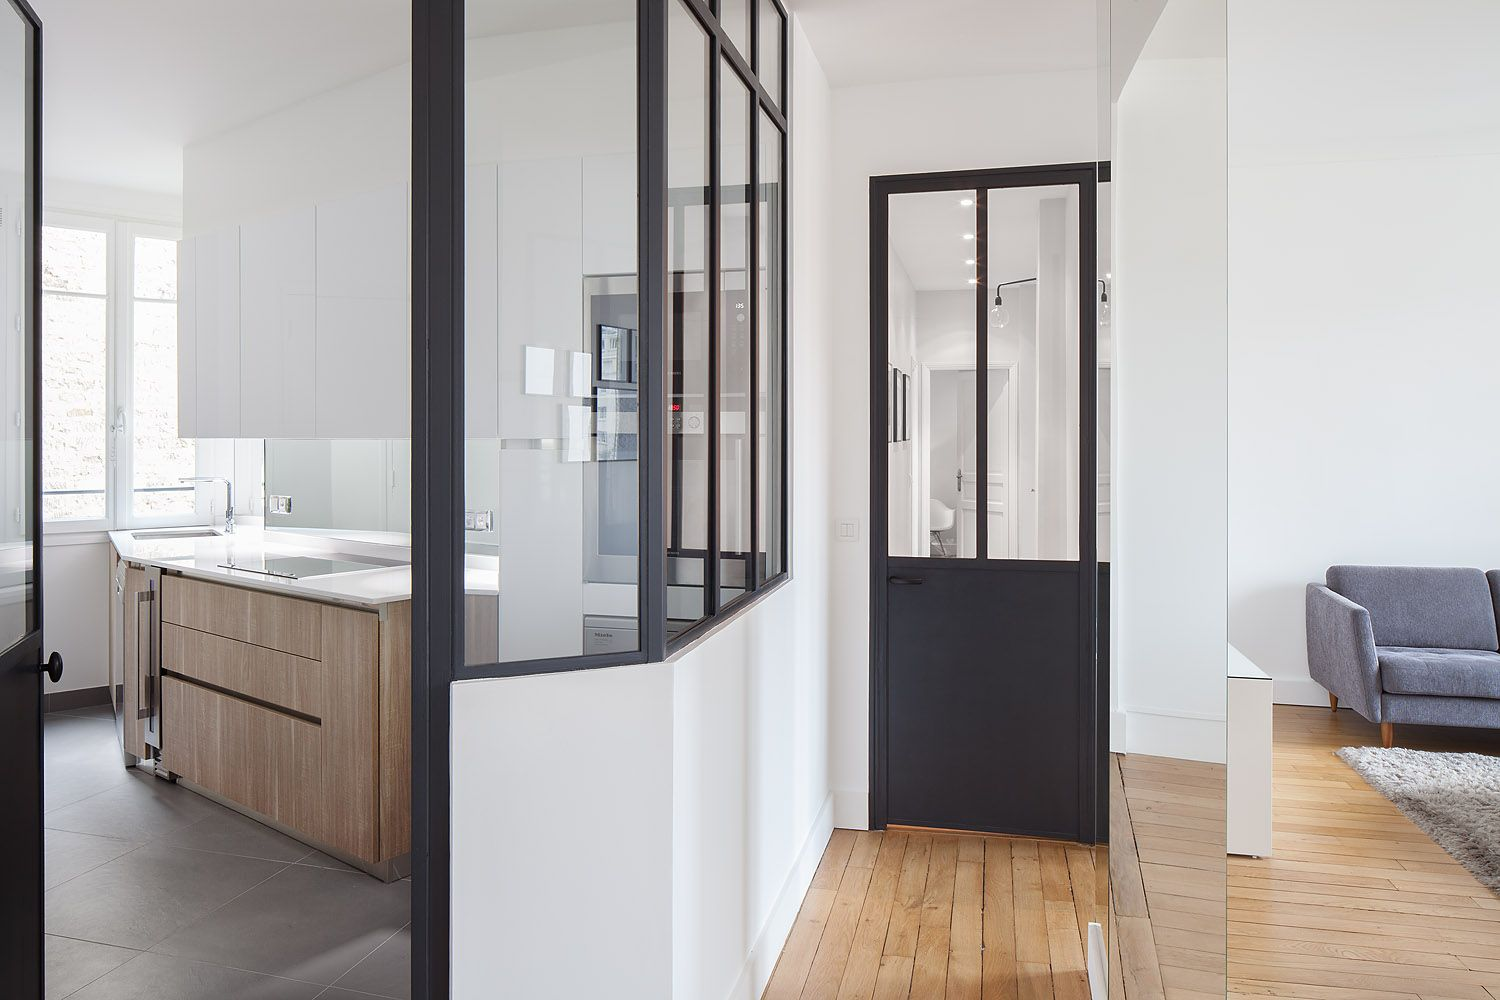 cuisine sobre avec verri re dans le 16e arrondissement de paris r nov e par l 39 architecte d. Black Bedroom Furniture Sets. Home Design Ideas